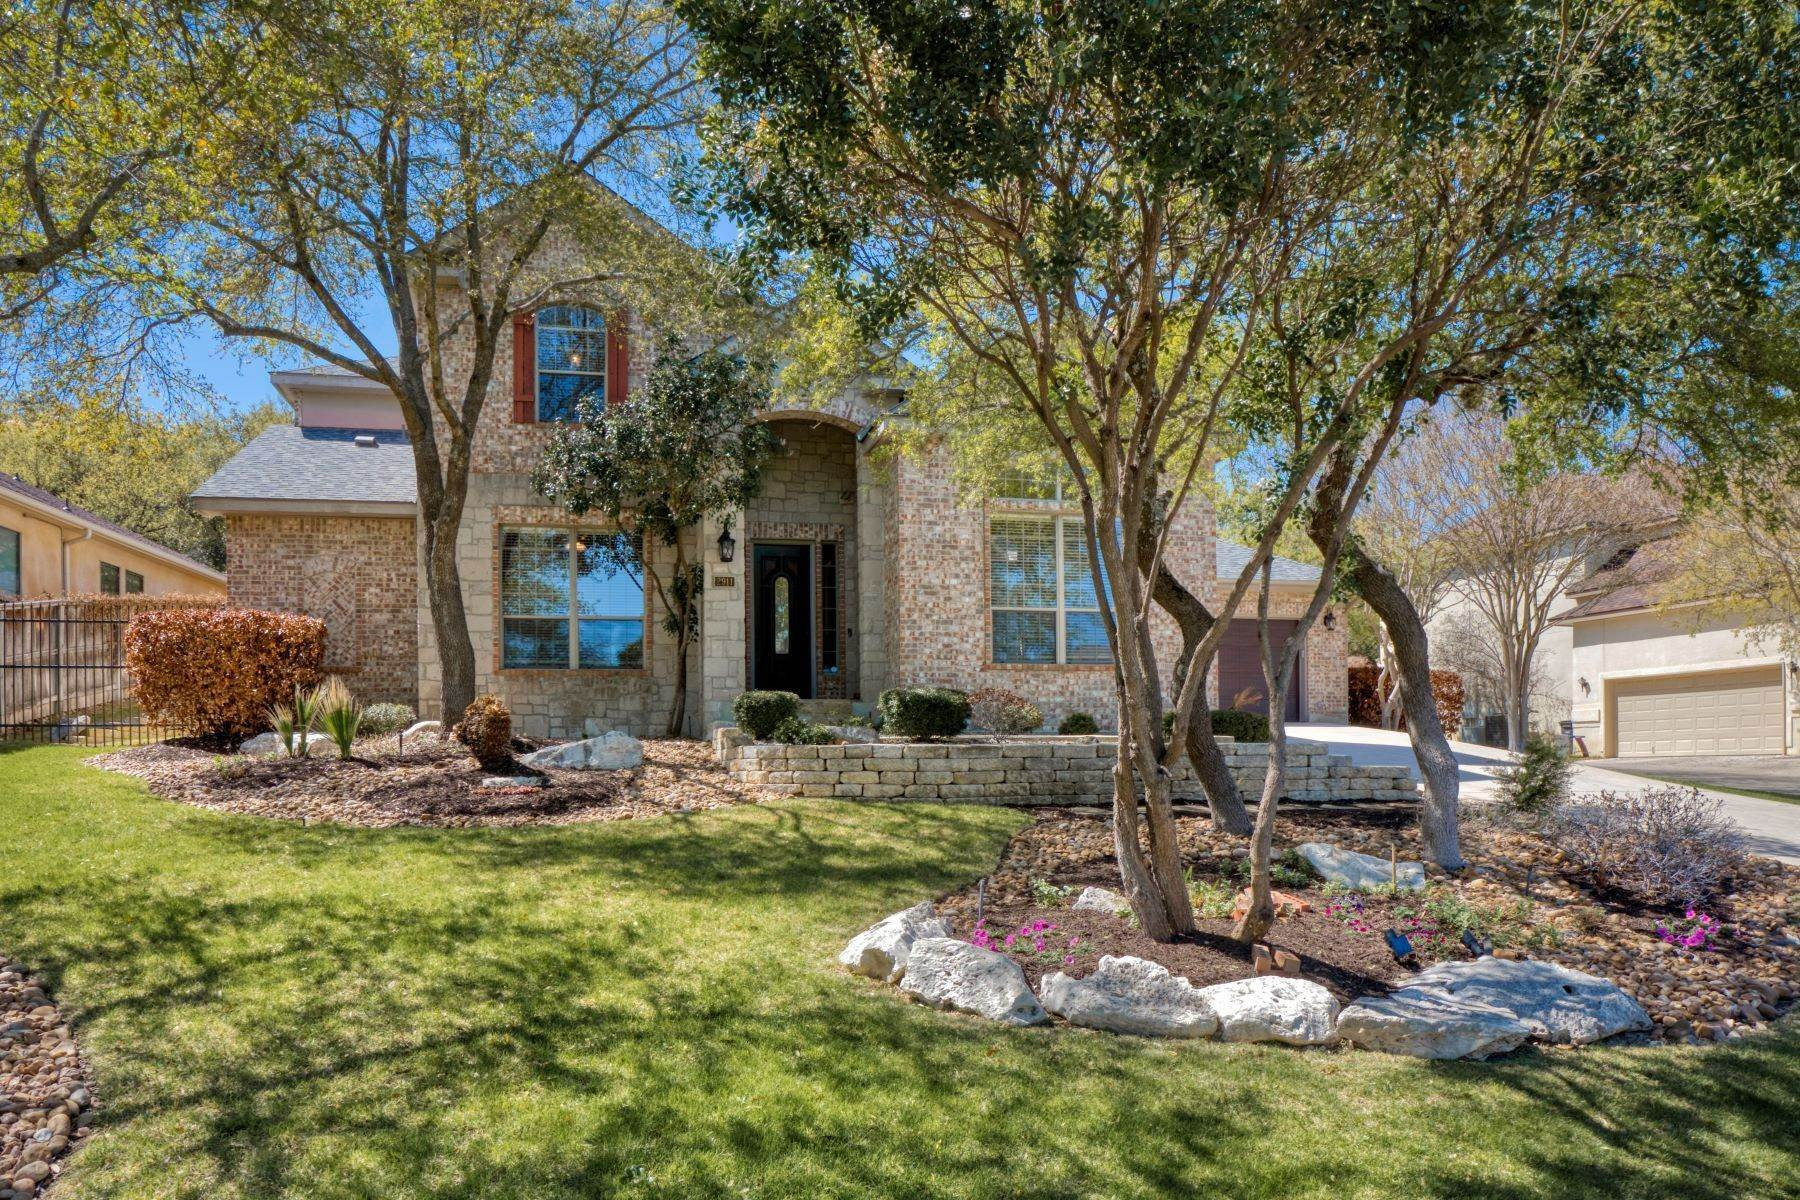 Single Family Homes for Sale at 2911 Ivory Creek, San Antonio, TX 78258 2911 Ivory Creek San Antonio, Texas 78258 United States